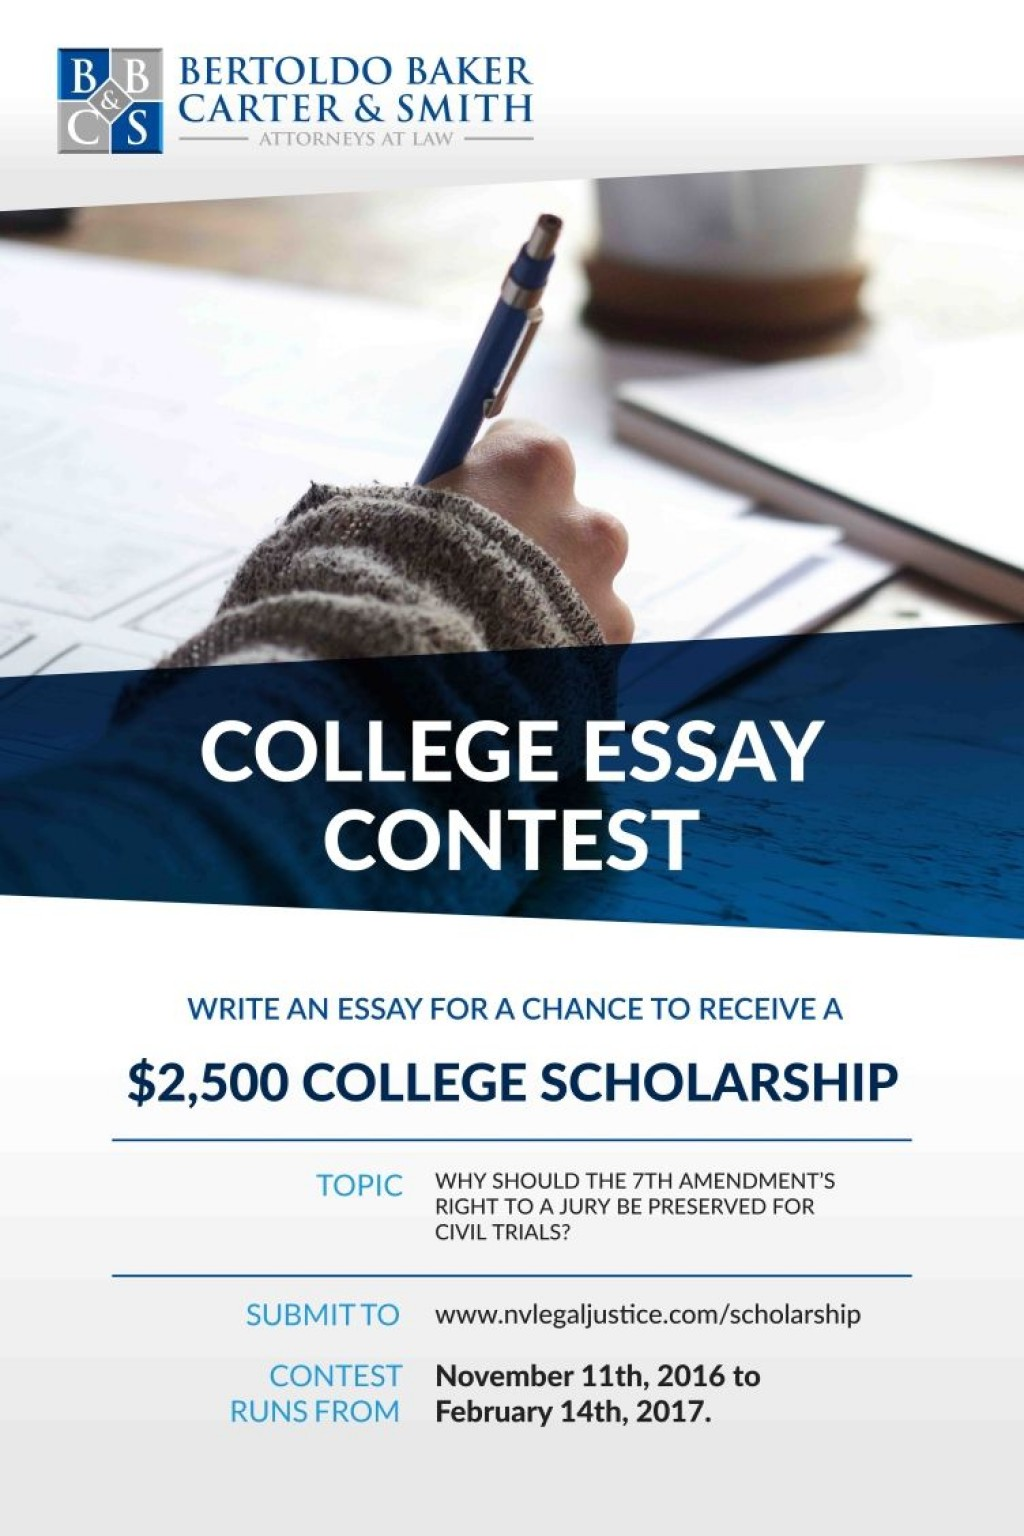 014 Essay Contests For High School Students Staggering 2017 Large